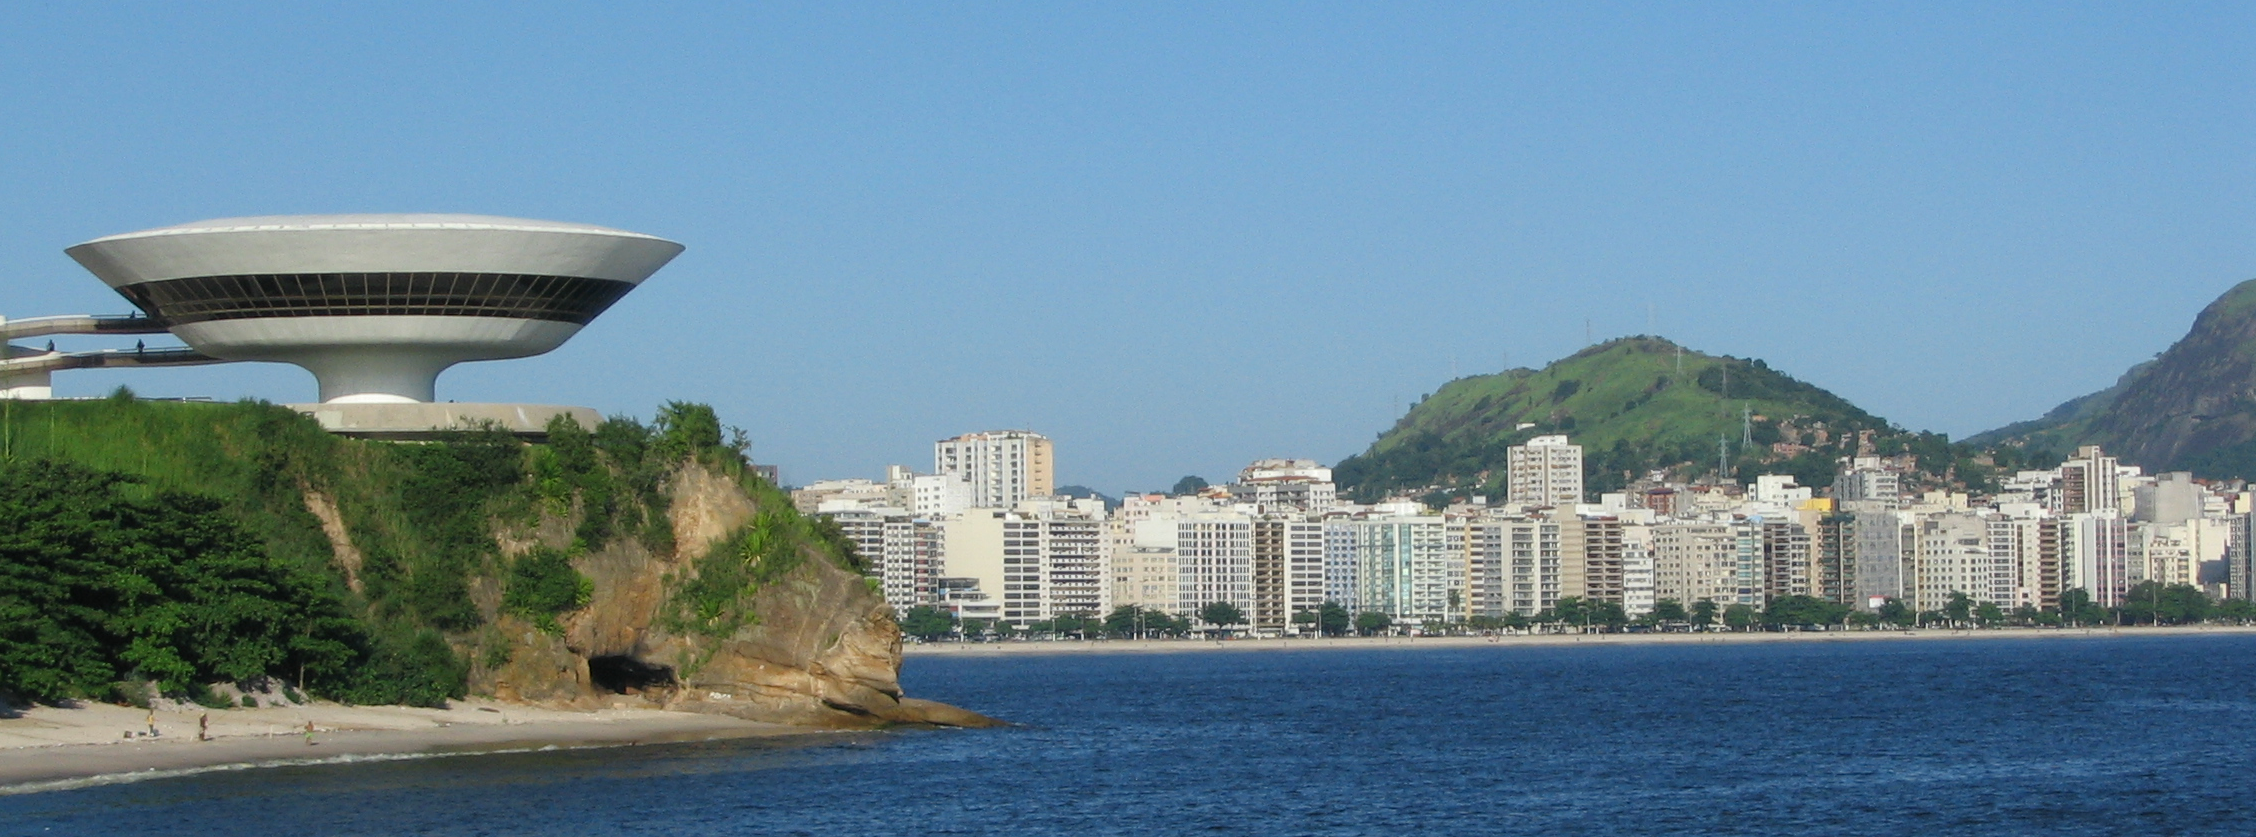 Launch of an opportunity study for a tram line in Niterói, Rio de Janeiro